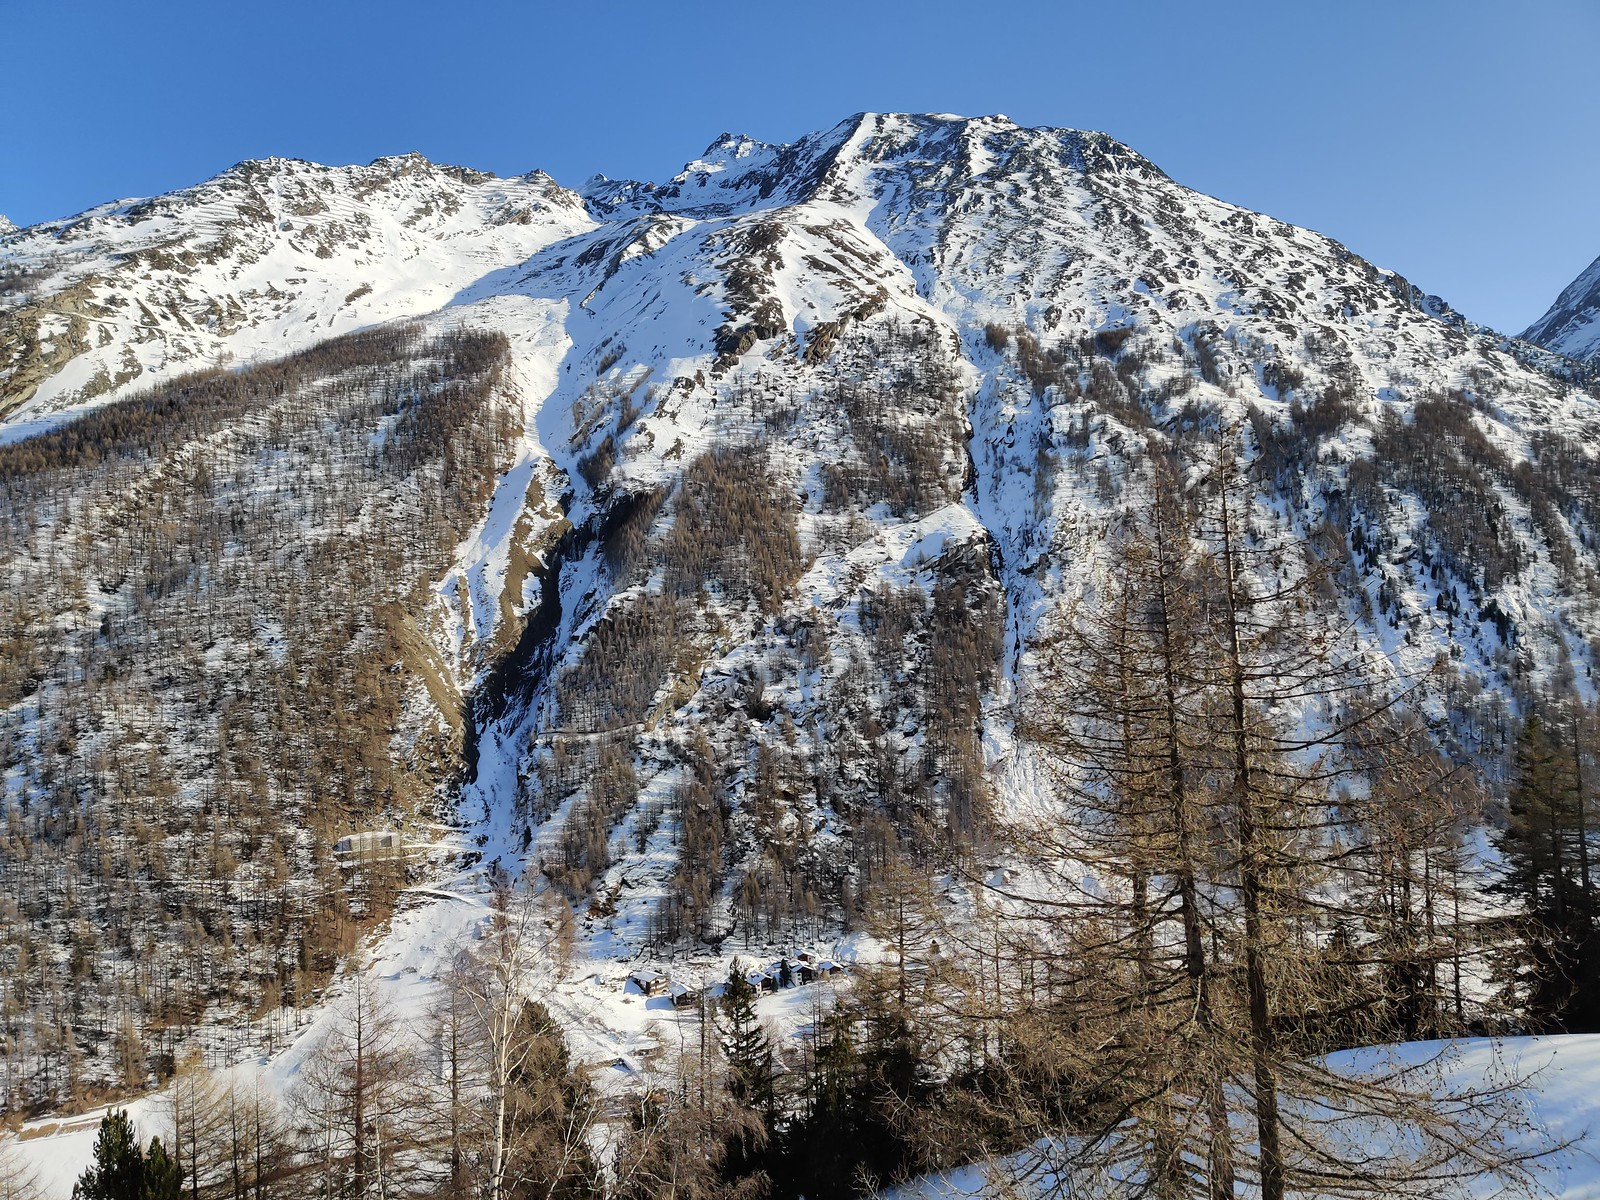 Mountain in the Saas valley